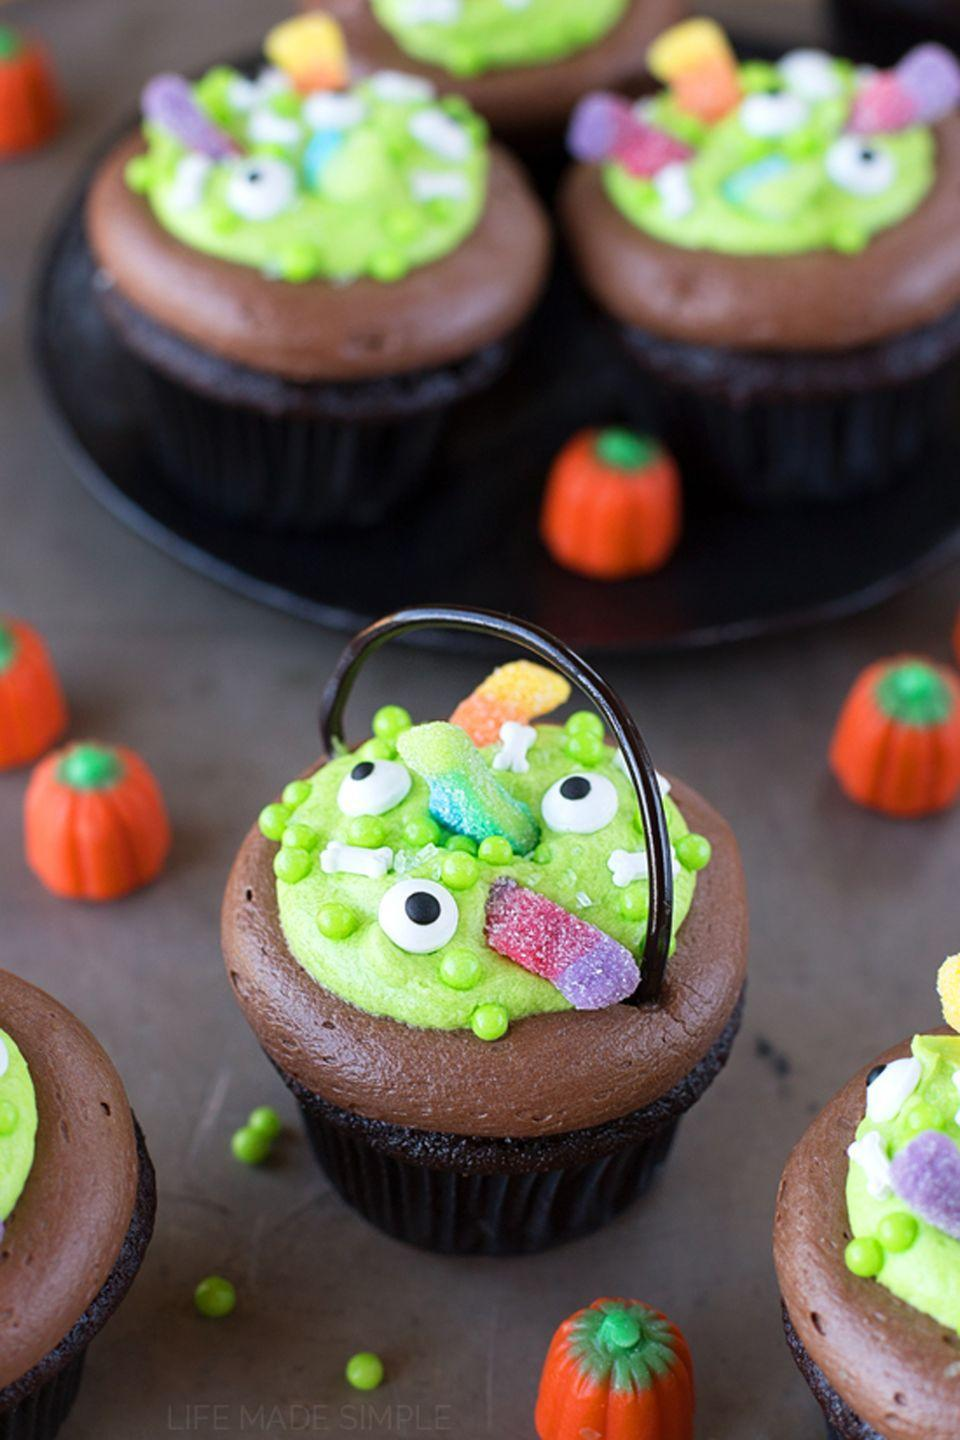 """<p>Ever wondered what's brewing in a witch's cauldron? In this case, it's a yummy """"scream"""" filling!</p><p><strong>Get the recipe at <a href=""""https://lifemadesimplebakes.com/2014/10/witchs-cauldron-chocolate-cupcakes/"""" rel=""""nofollow noopener"""" target=""""_blank"""" data-ylk=""""slk:Life Made Simple"""" class=""""link rapid-noclick-resp"""">Life Made Simple</a>.</strong></p>"""